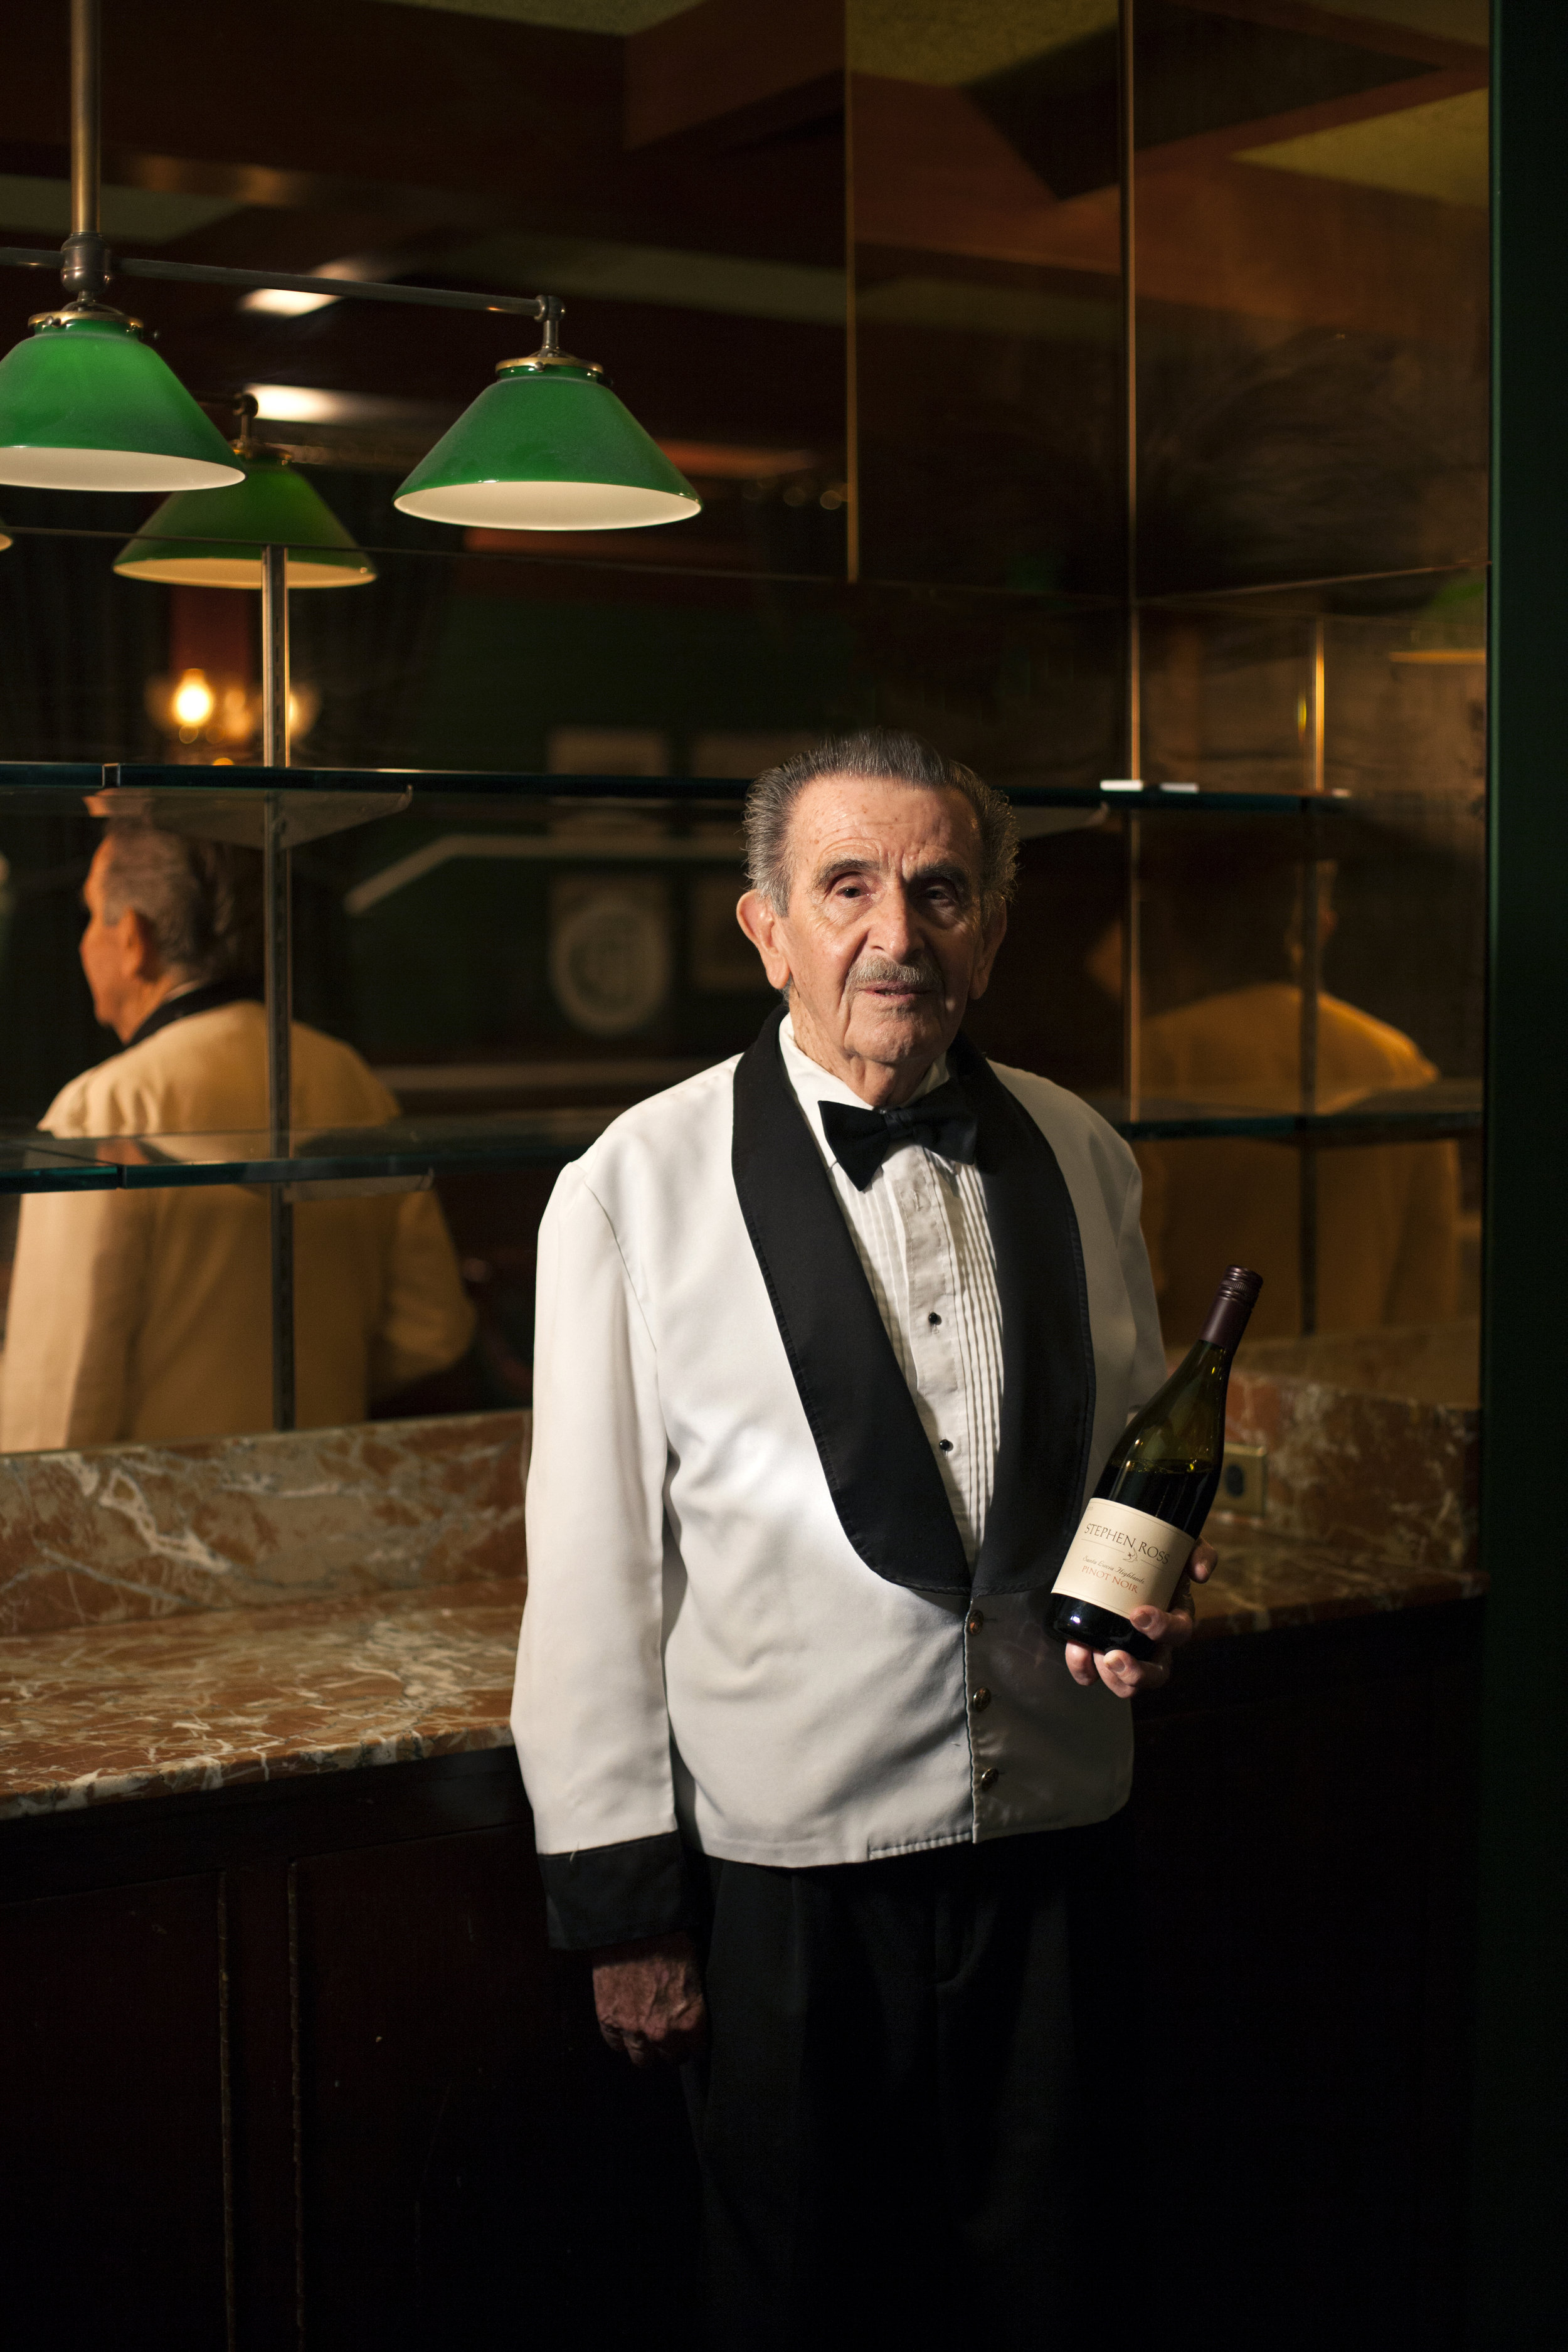 """Raffi Covarrubias - Rafael """"Rafi"""" Covarrubias is 84. He works the 6 p.m. to 2 a.m. shift five days a week at Pacific Dining Car in Downtown LA. """"I love this place. I like what I do and I make a decent living doing it. It also protects my sanity."""" A native of Guadalajara, Mexico, Covarrubias says he became a bartender by accident. """"When I moved to LA at the age of 25, I started washing dishes at a hotel. Then I got the opportunity to bartend."""""""